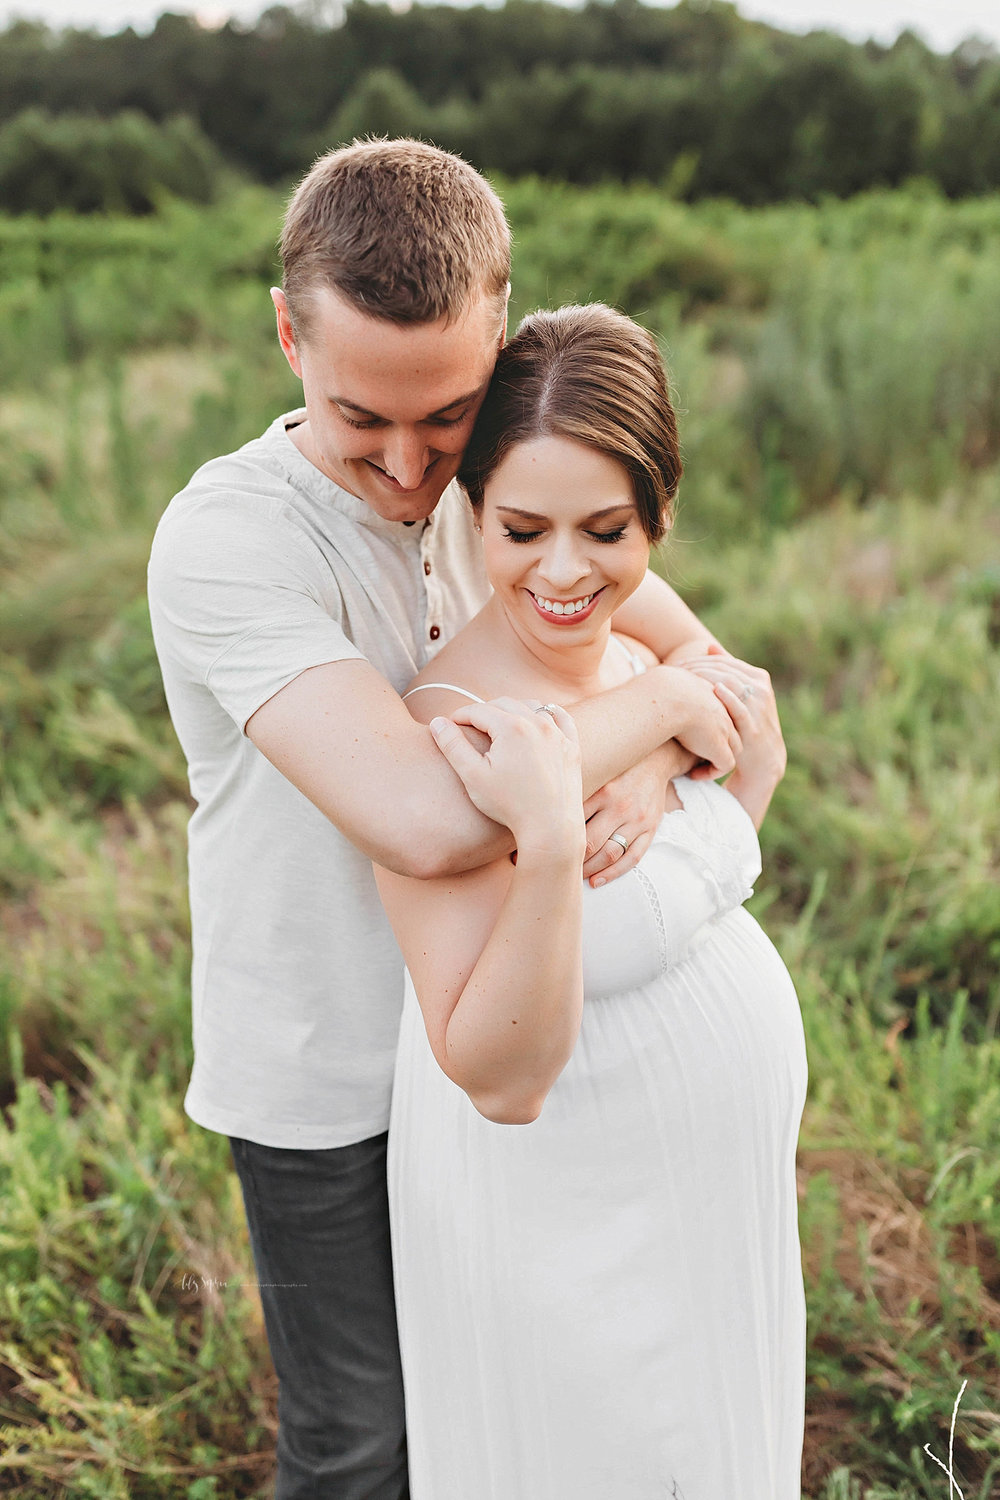 Image of a pregnant woman, wearing a spaghetti strap, white dress, while her husband wraps his arms around her neck.